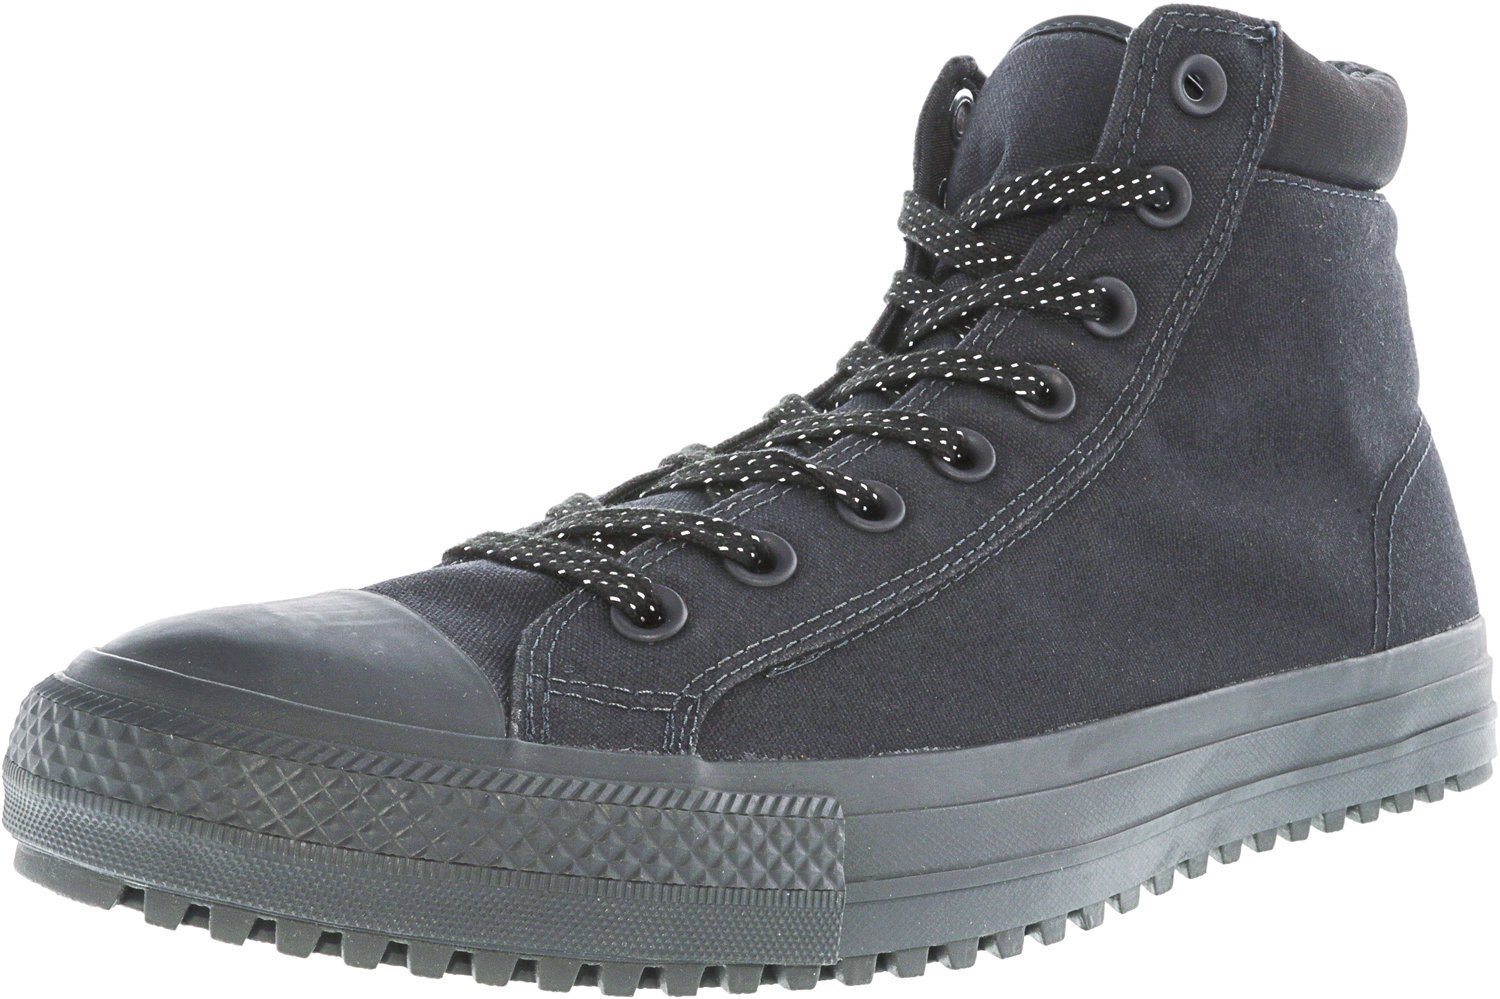 Converse CTAS PC High Top Boot 153681C (10 D(M) US Men)